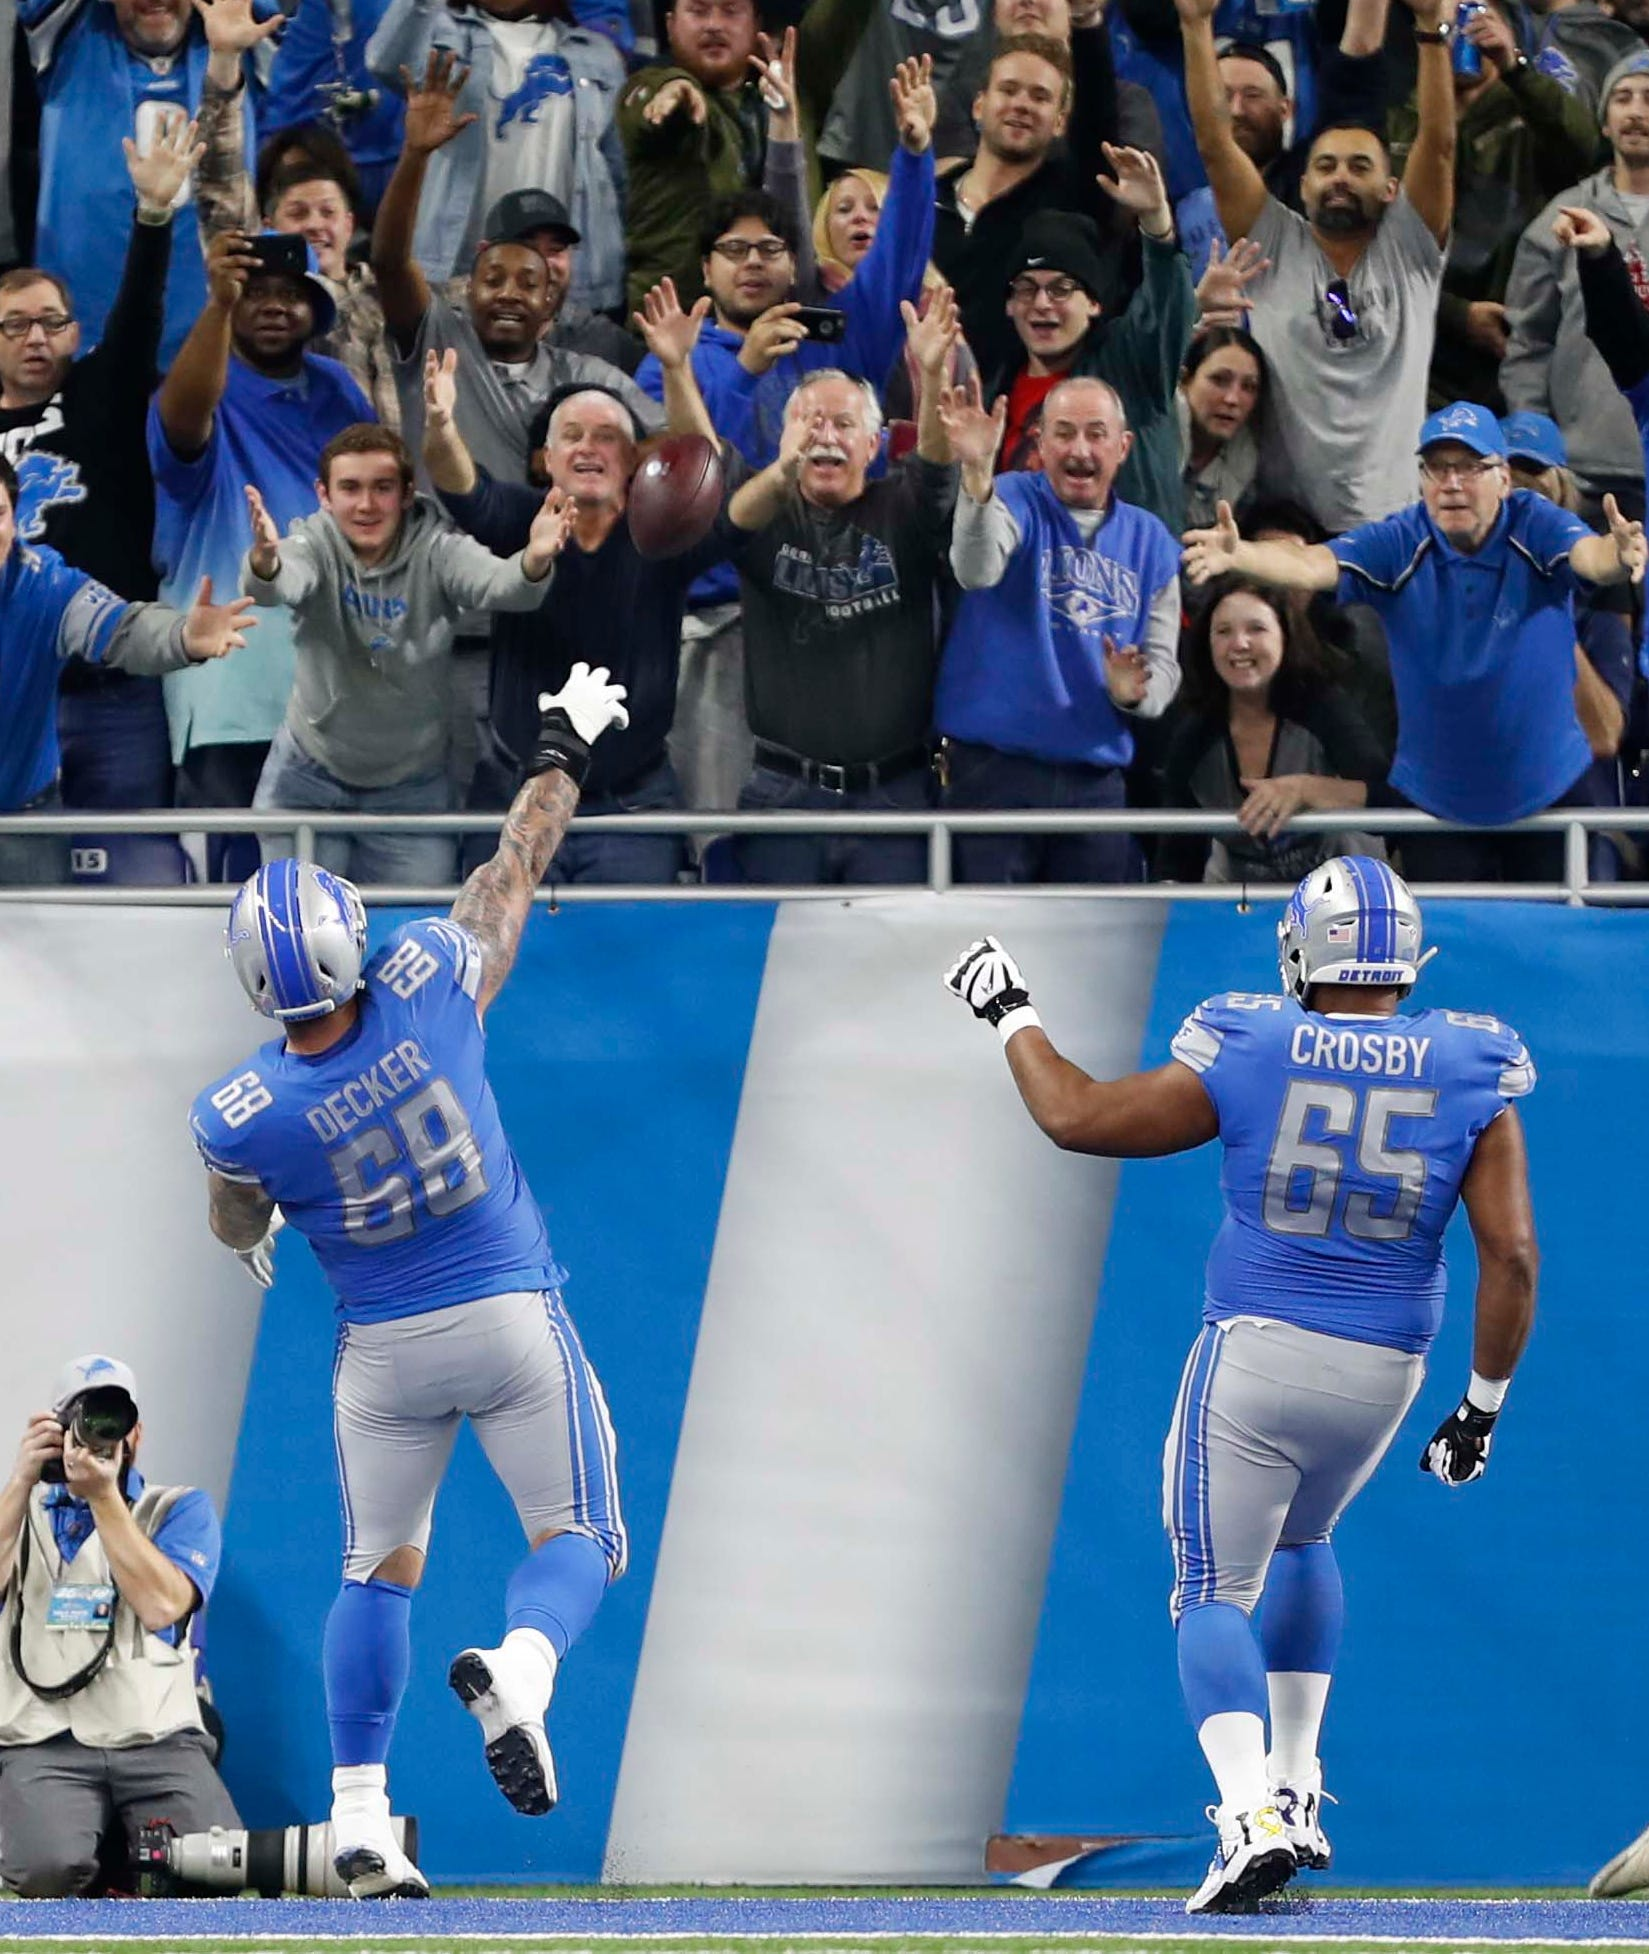 24. Lions (19): Honolulu Blue and silver linings. Taylor Decker found dude who caught ball left tackle chucked into stands after scoring first TD of his life.